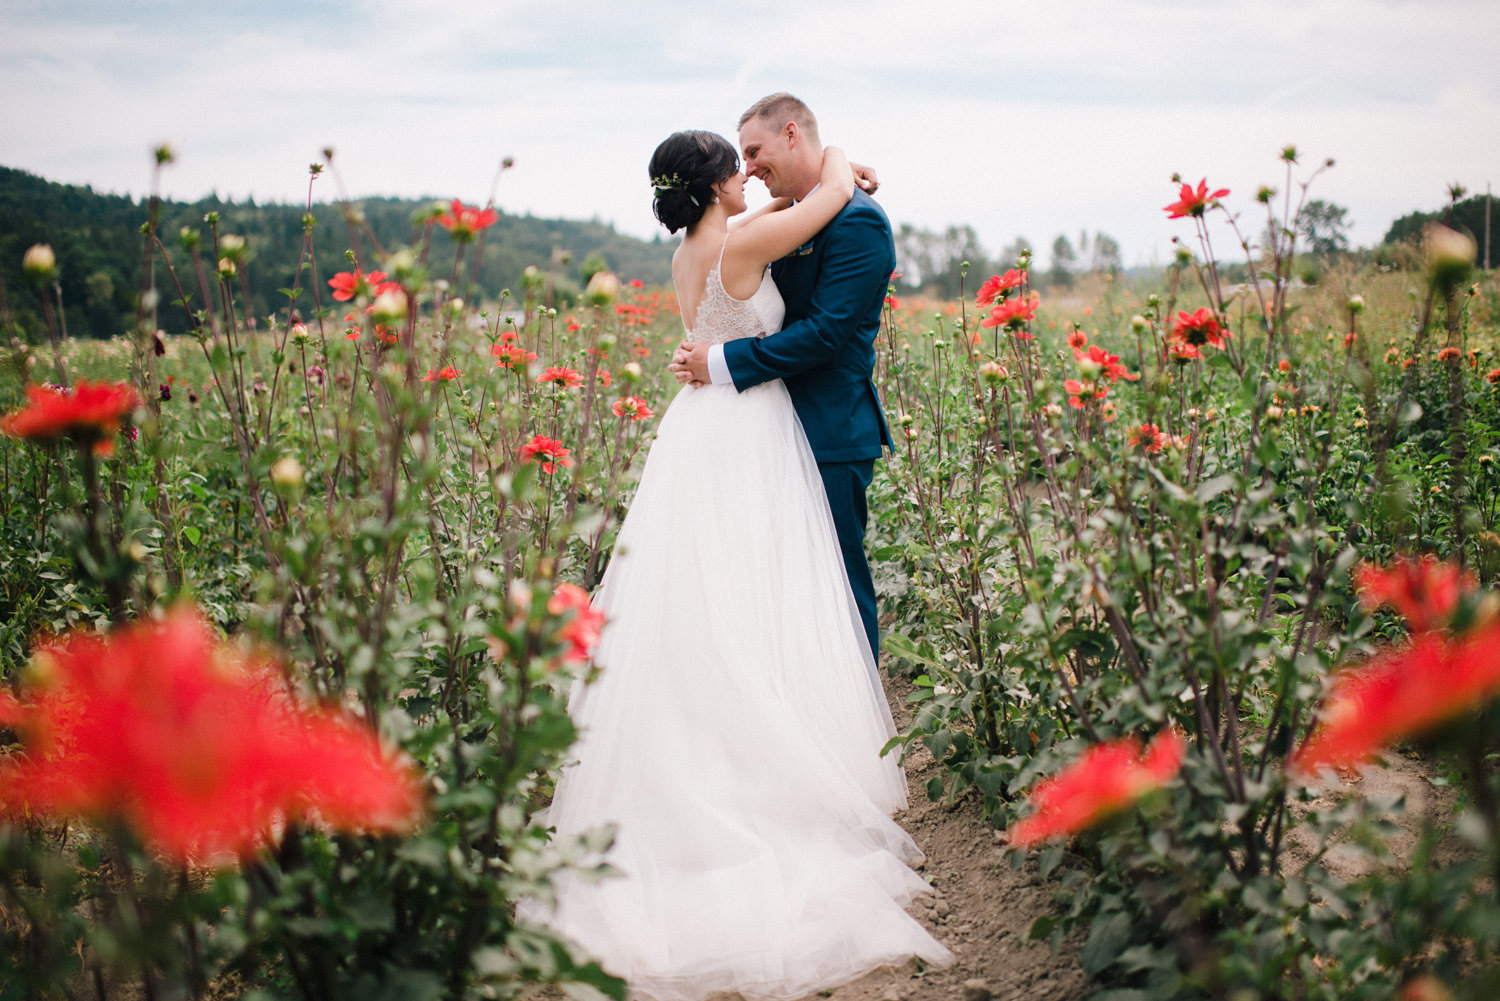 119-woodland-farm-meadow-wedding-by-best-seattle-film-photographer.jpg